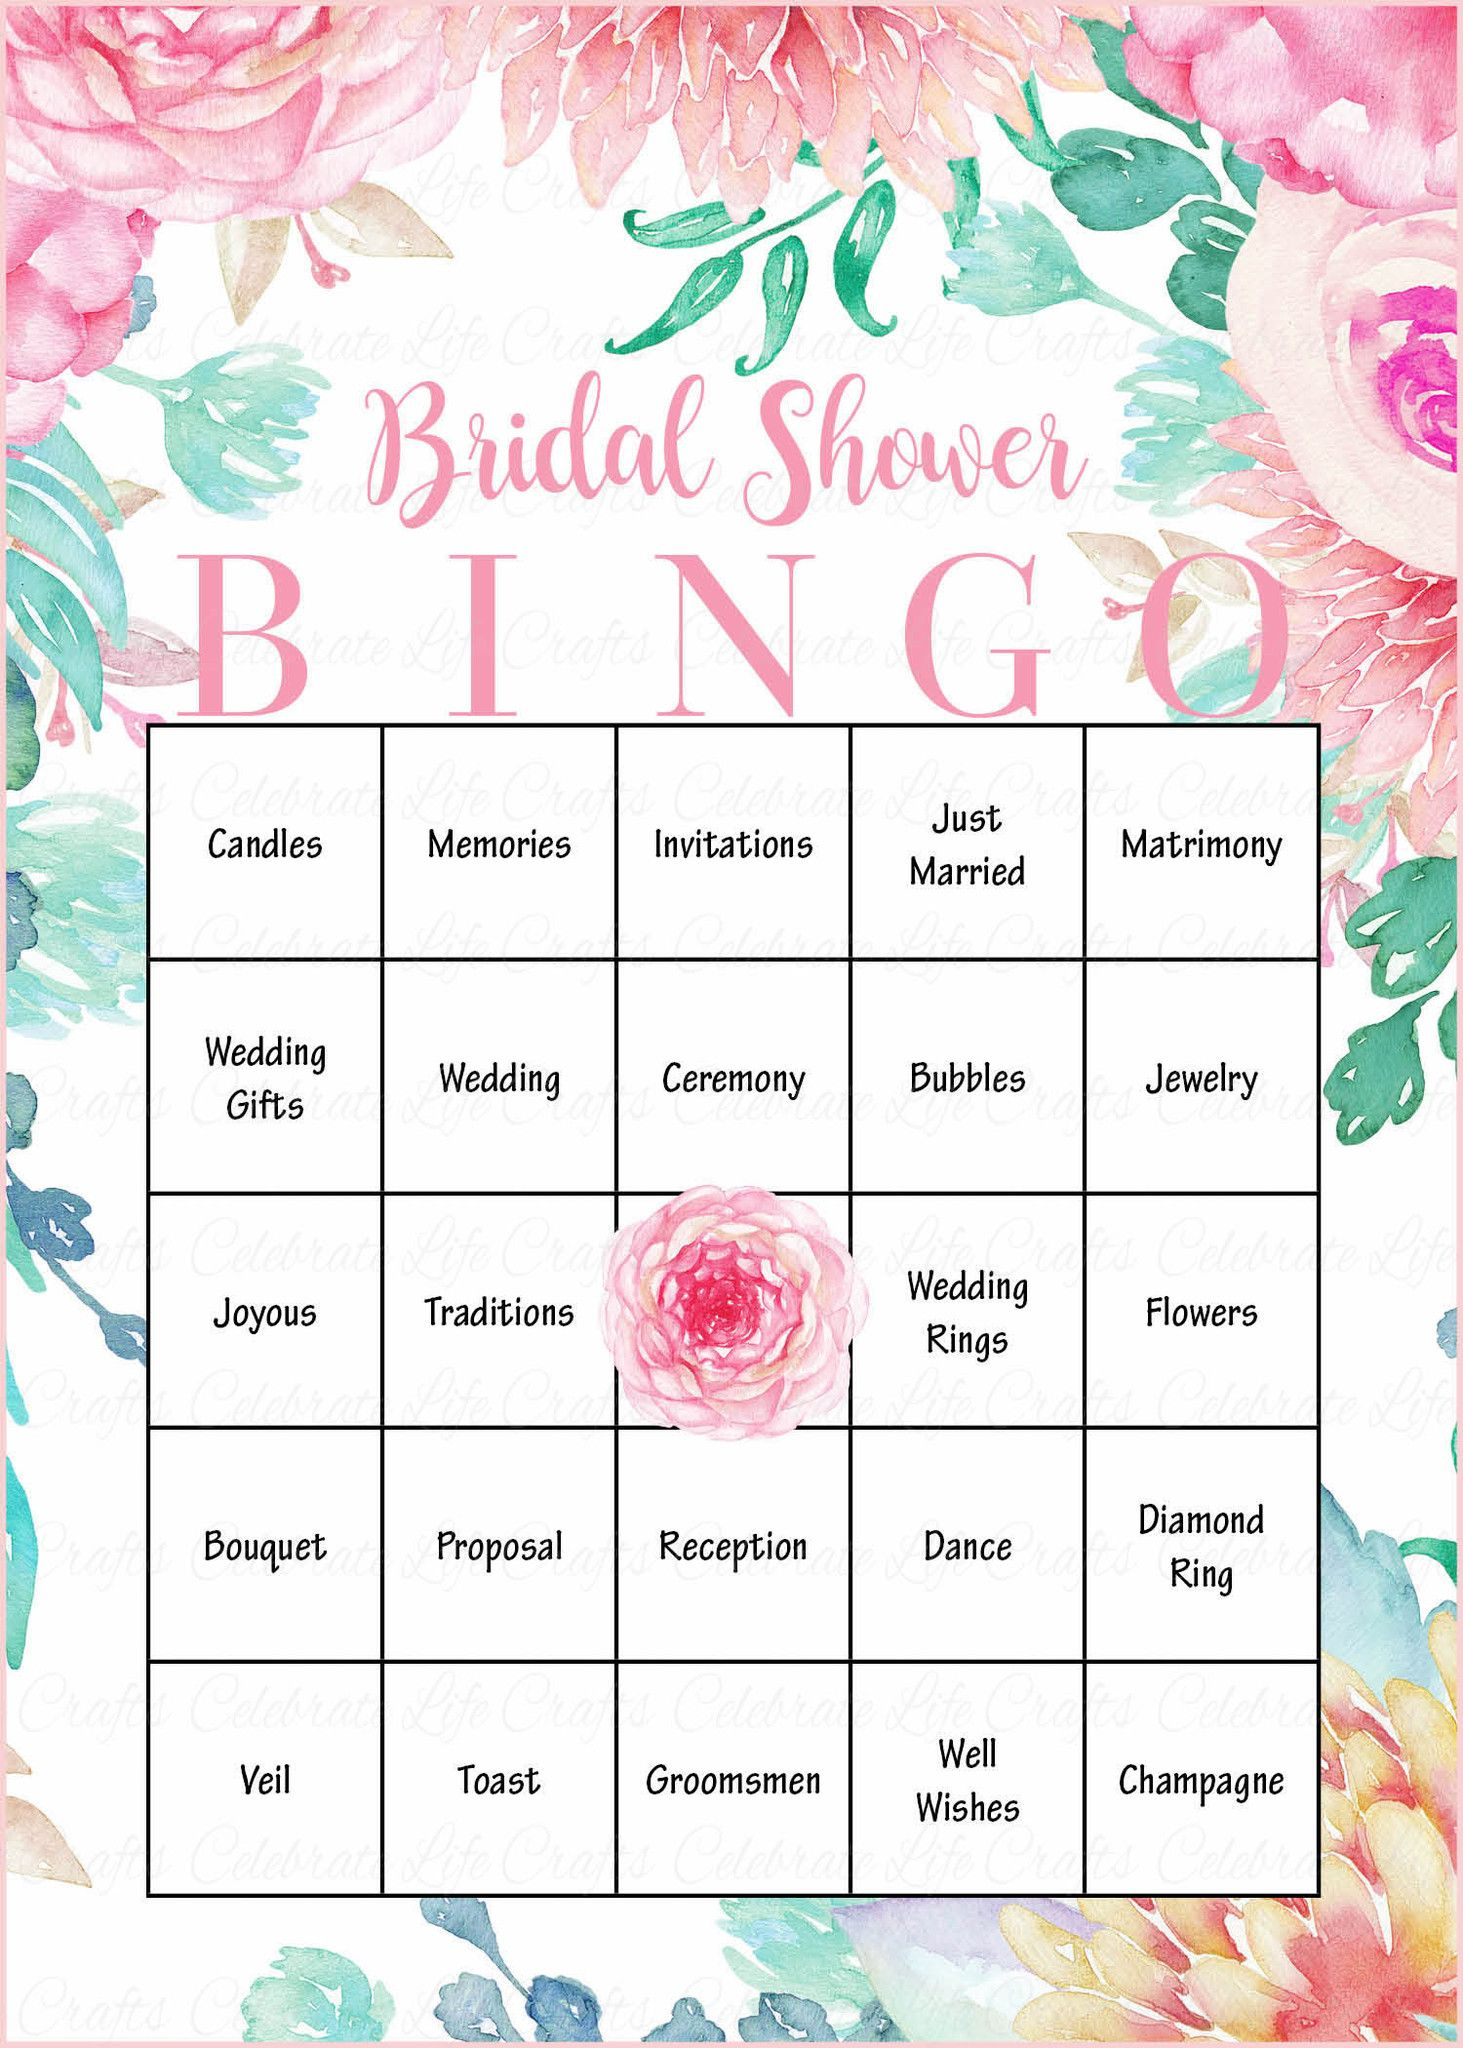 bridal shower bingo is a fun shower game that guests of all ages will love our beautiful pink rose floral design will add an elegant touch to your bridal